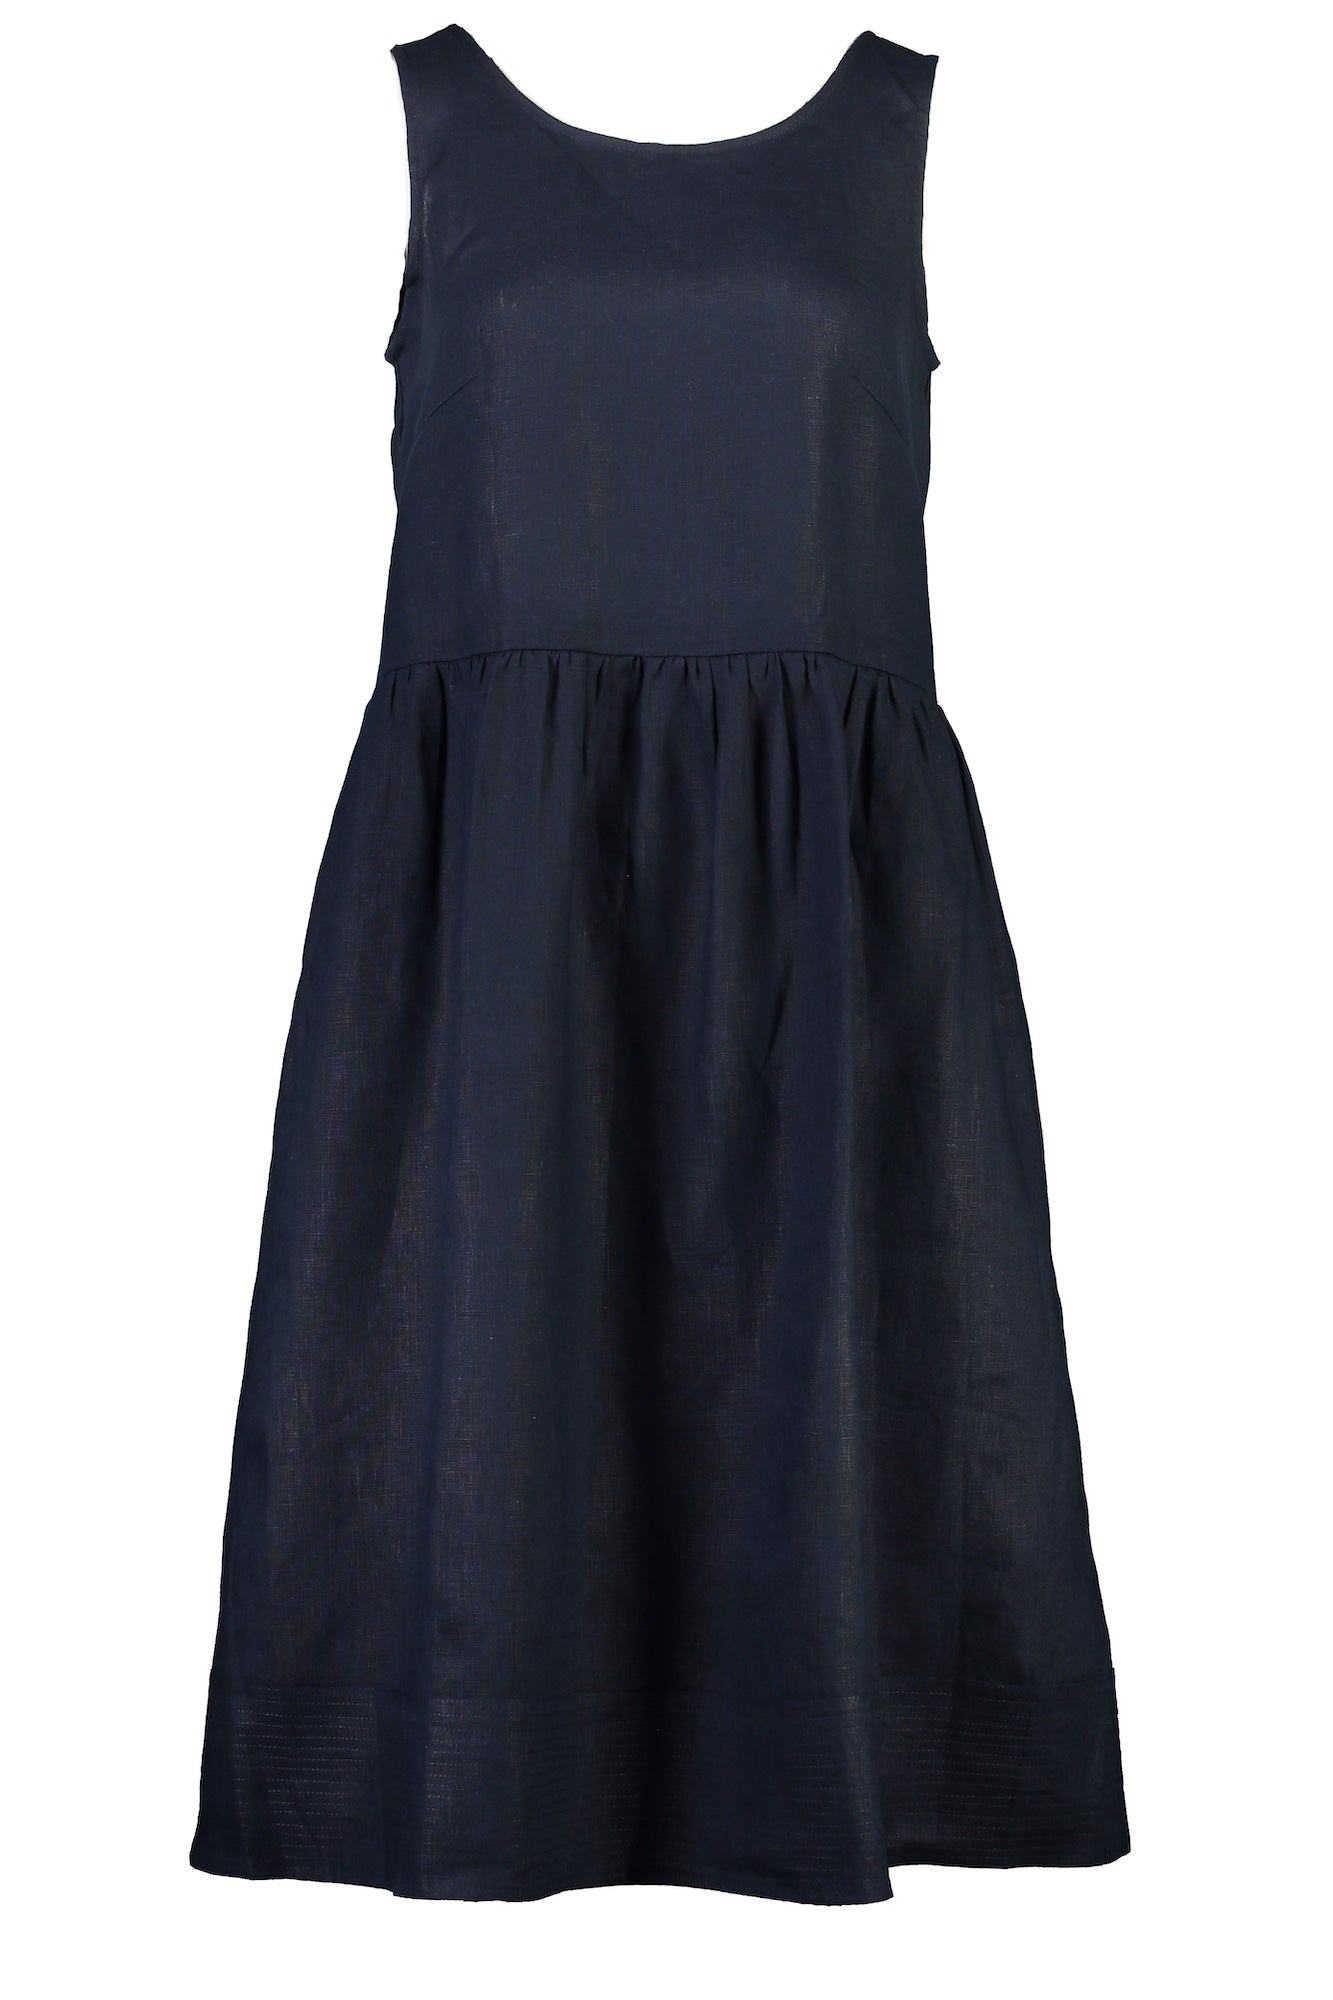 Eat Sleep Repeat Dress in Indigo - hej hej